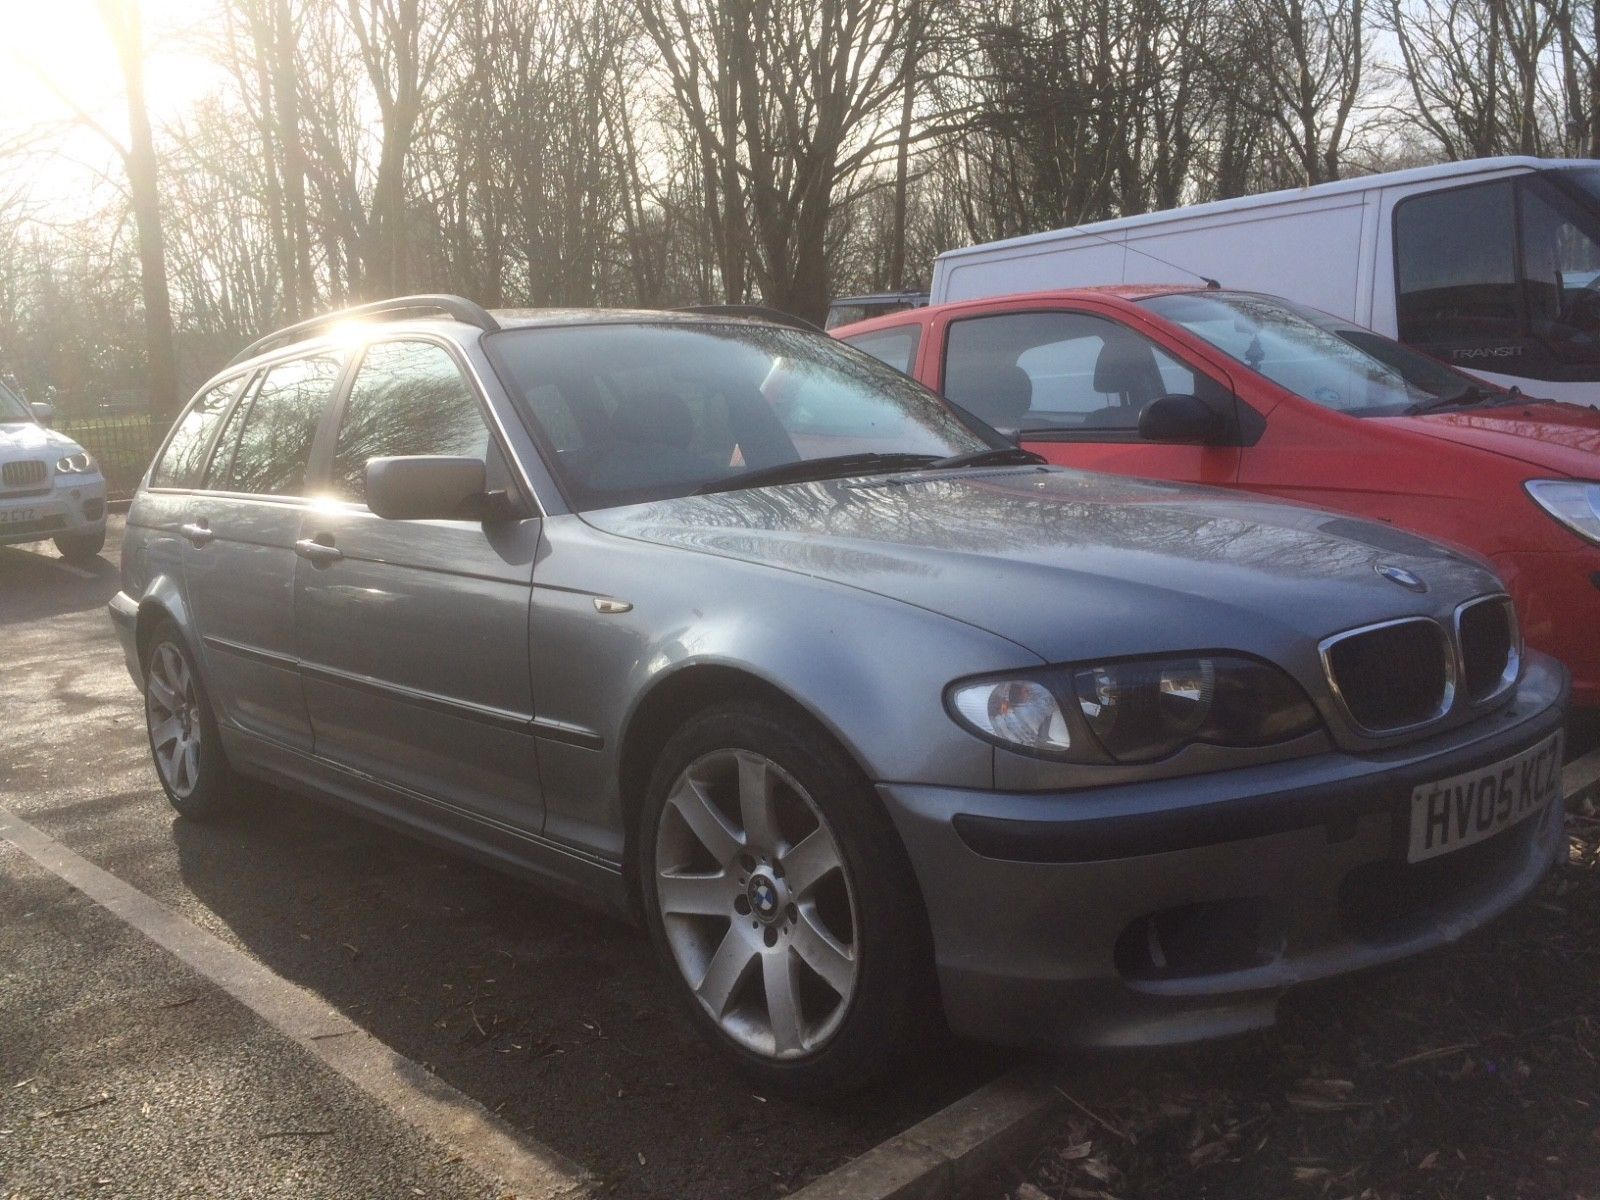 BMW 320d TOURING 2005 (55) 162k*SPARES OR REPAIRS* LONG M..O.T INC ...